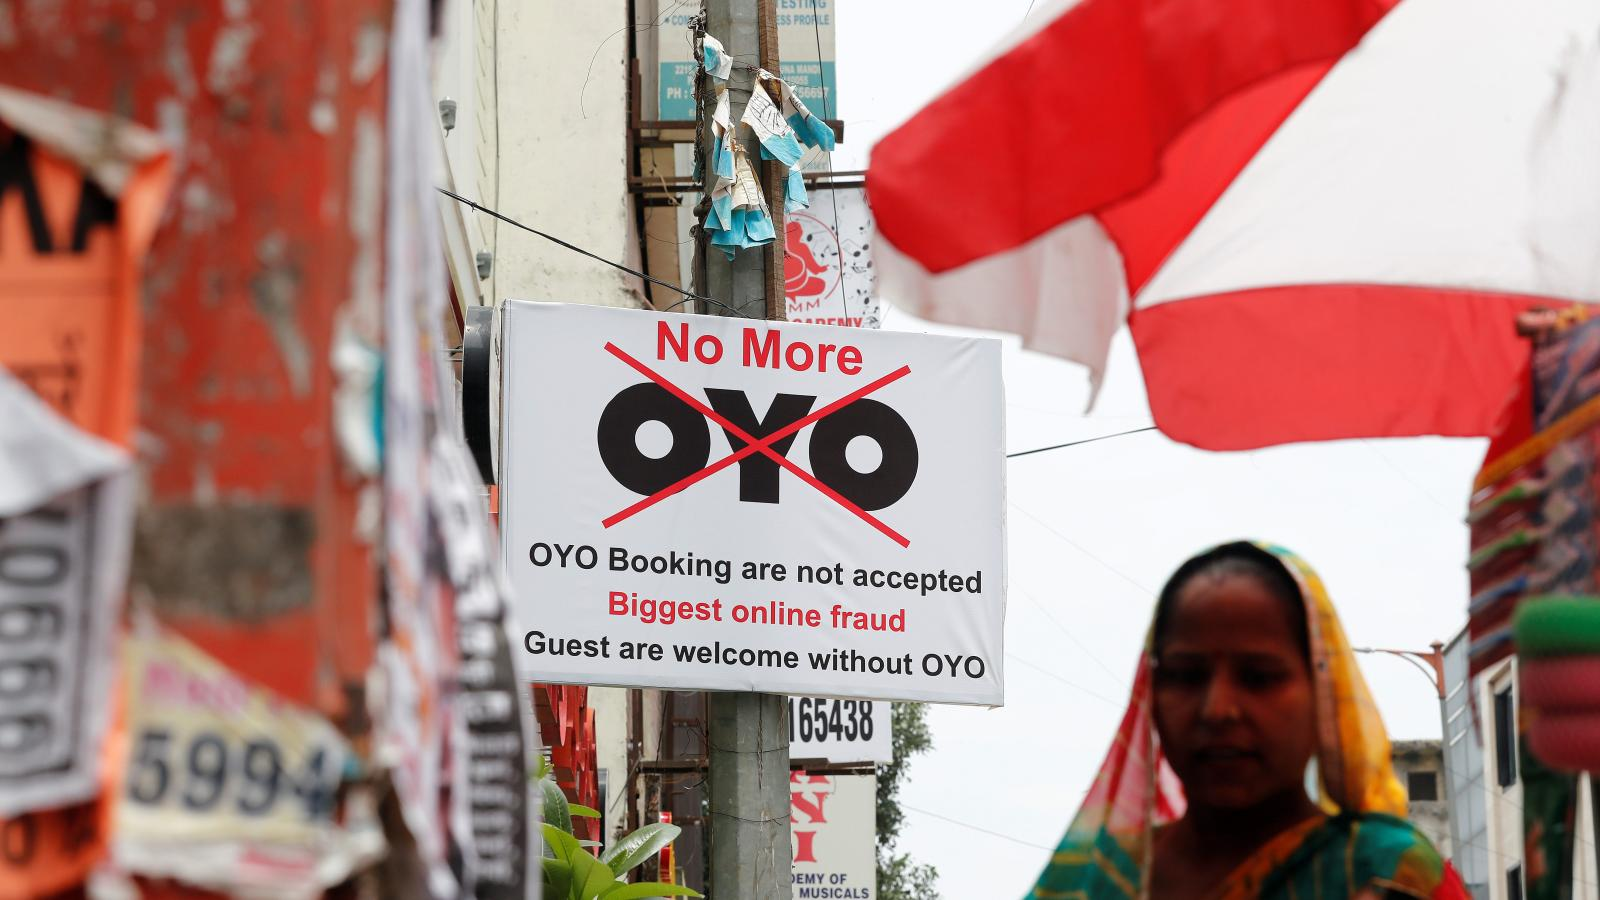 Oyo Rooms Fraud Allegations